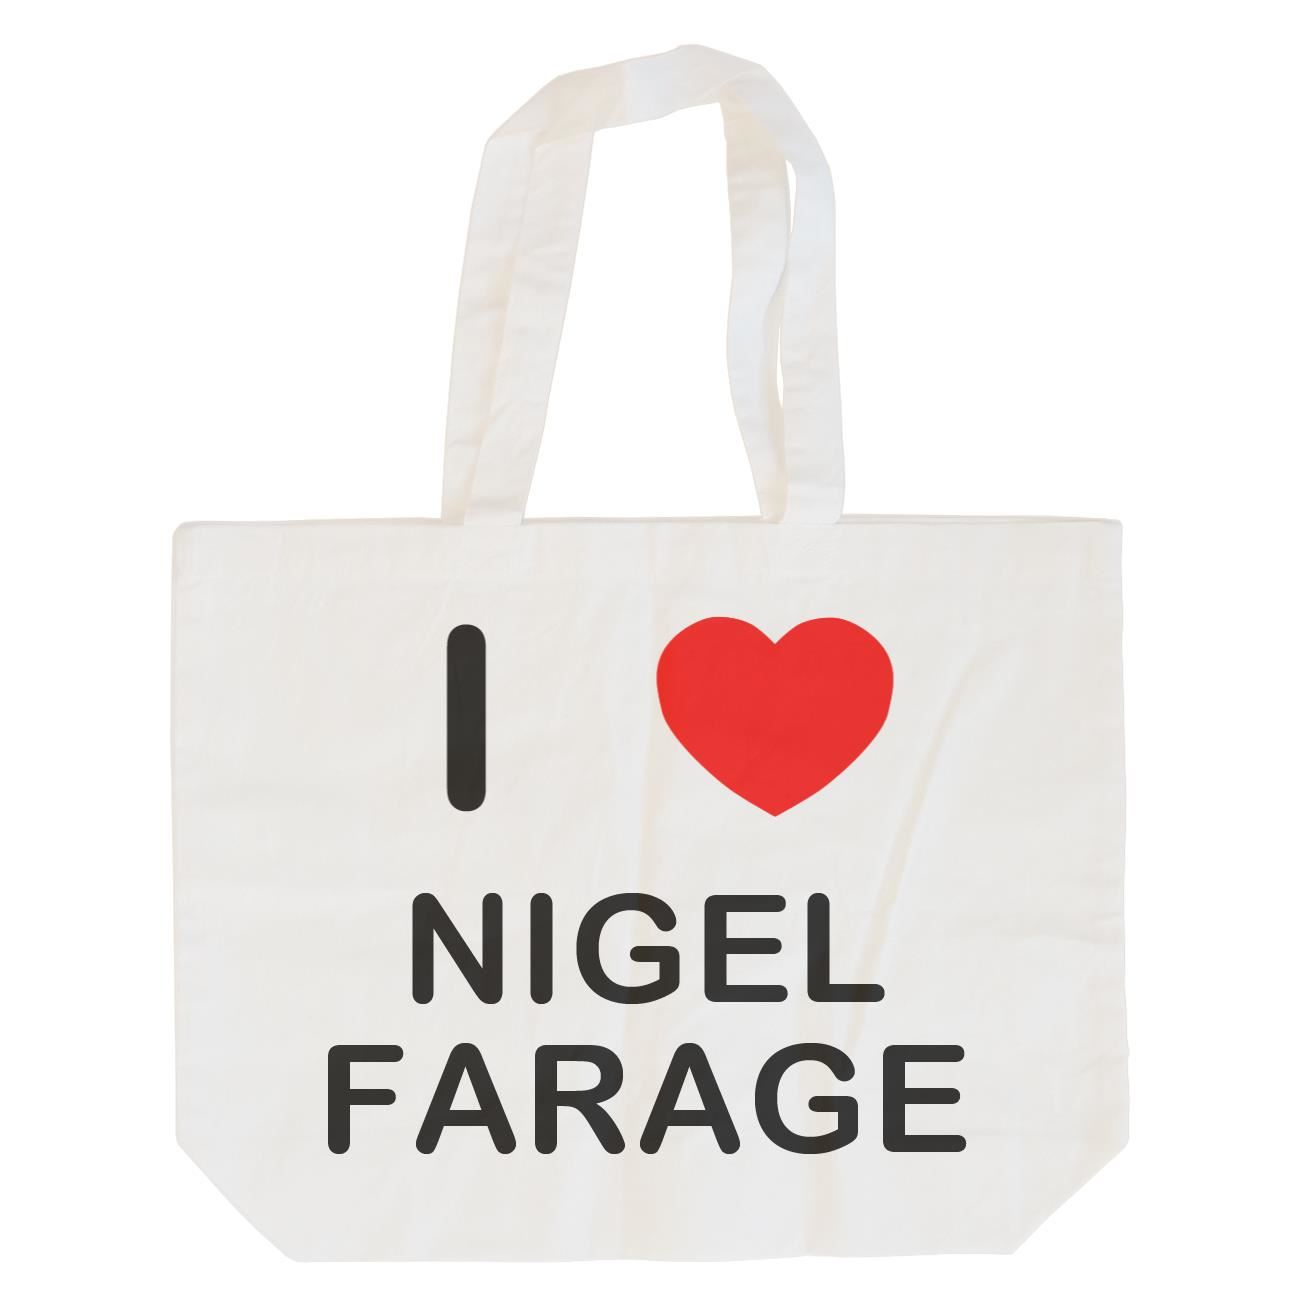 I Love Nigel Farage - Cotton Bag | Size choice Tote, Shopper or Sling